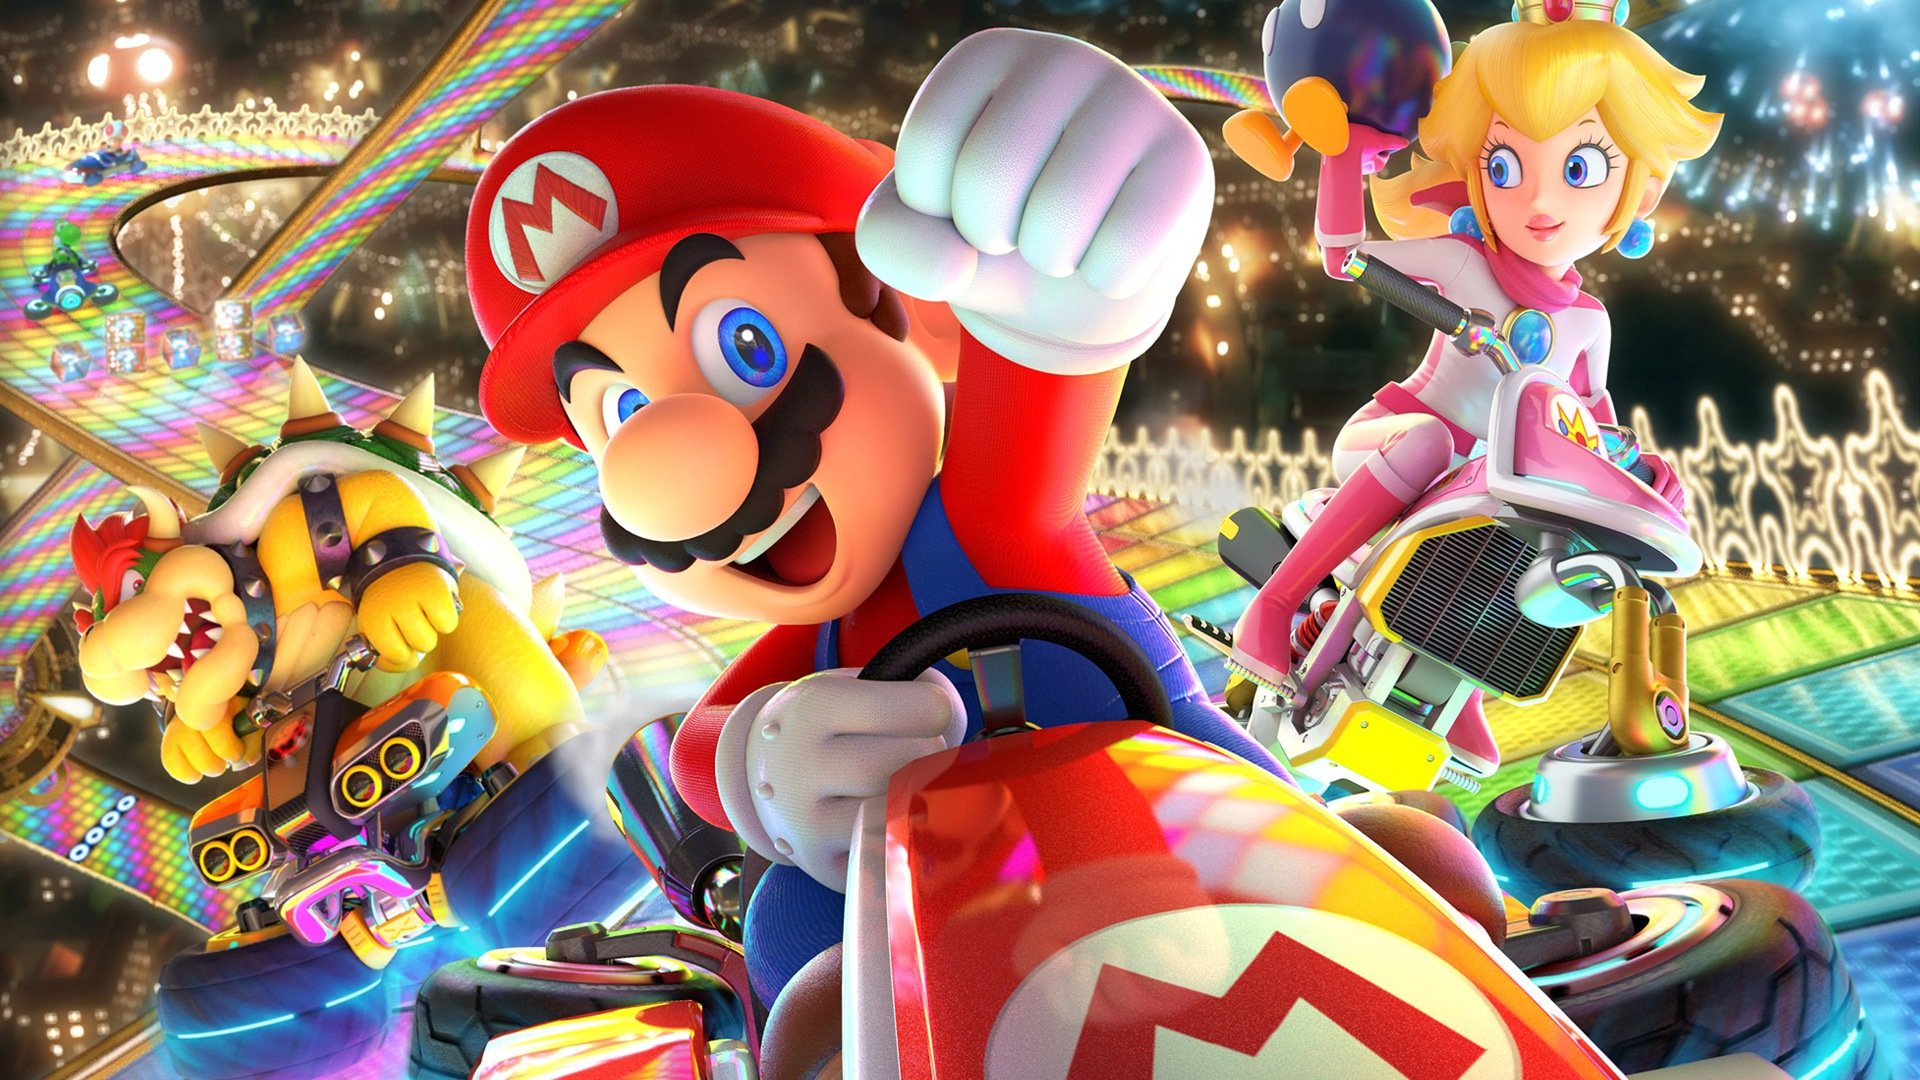 Animated Mario Film Is Coming In 2022 With More Nintendo Movies And TV Shows Possibly In The Works